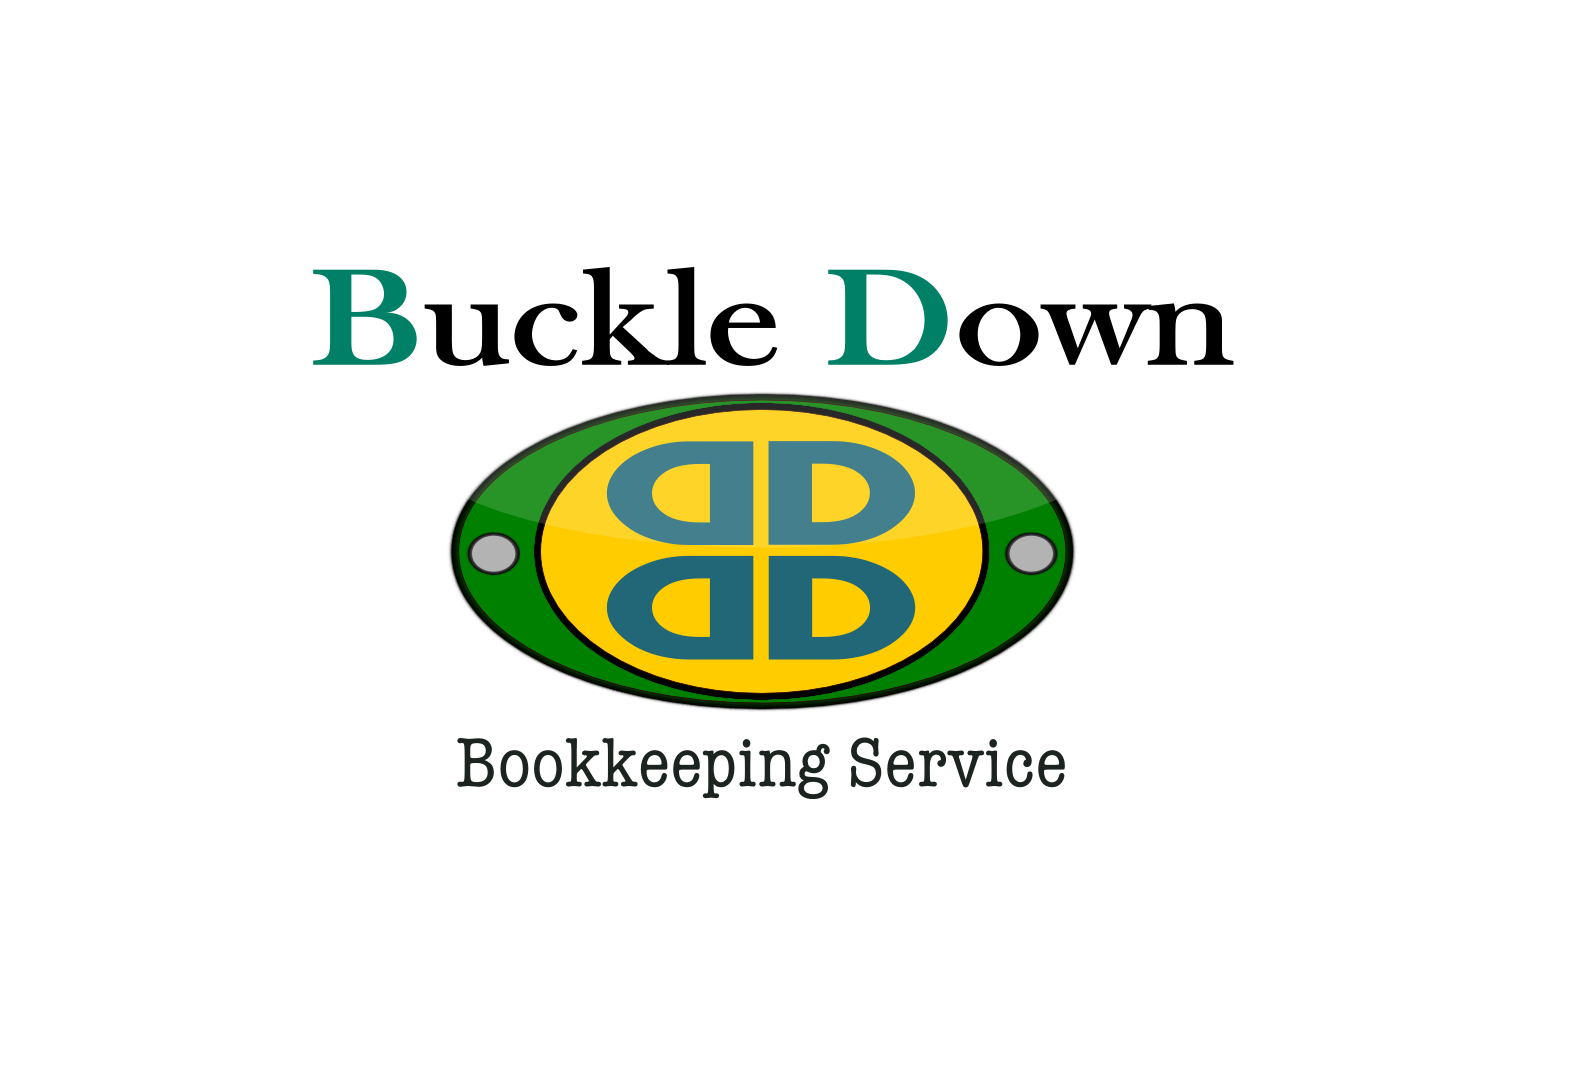 Logo Design by Joseph calunsag Cagaanan - Entry No. 5 in the Logo Design Contest Unique Logo Design Wanted for Buckle Down Bookkeeping Service.